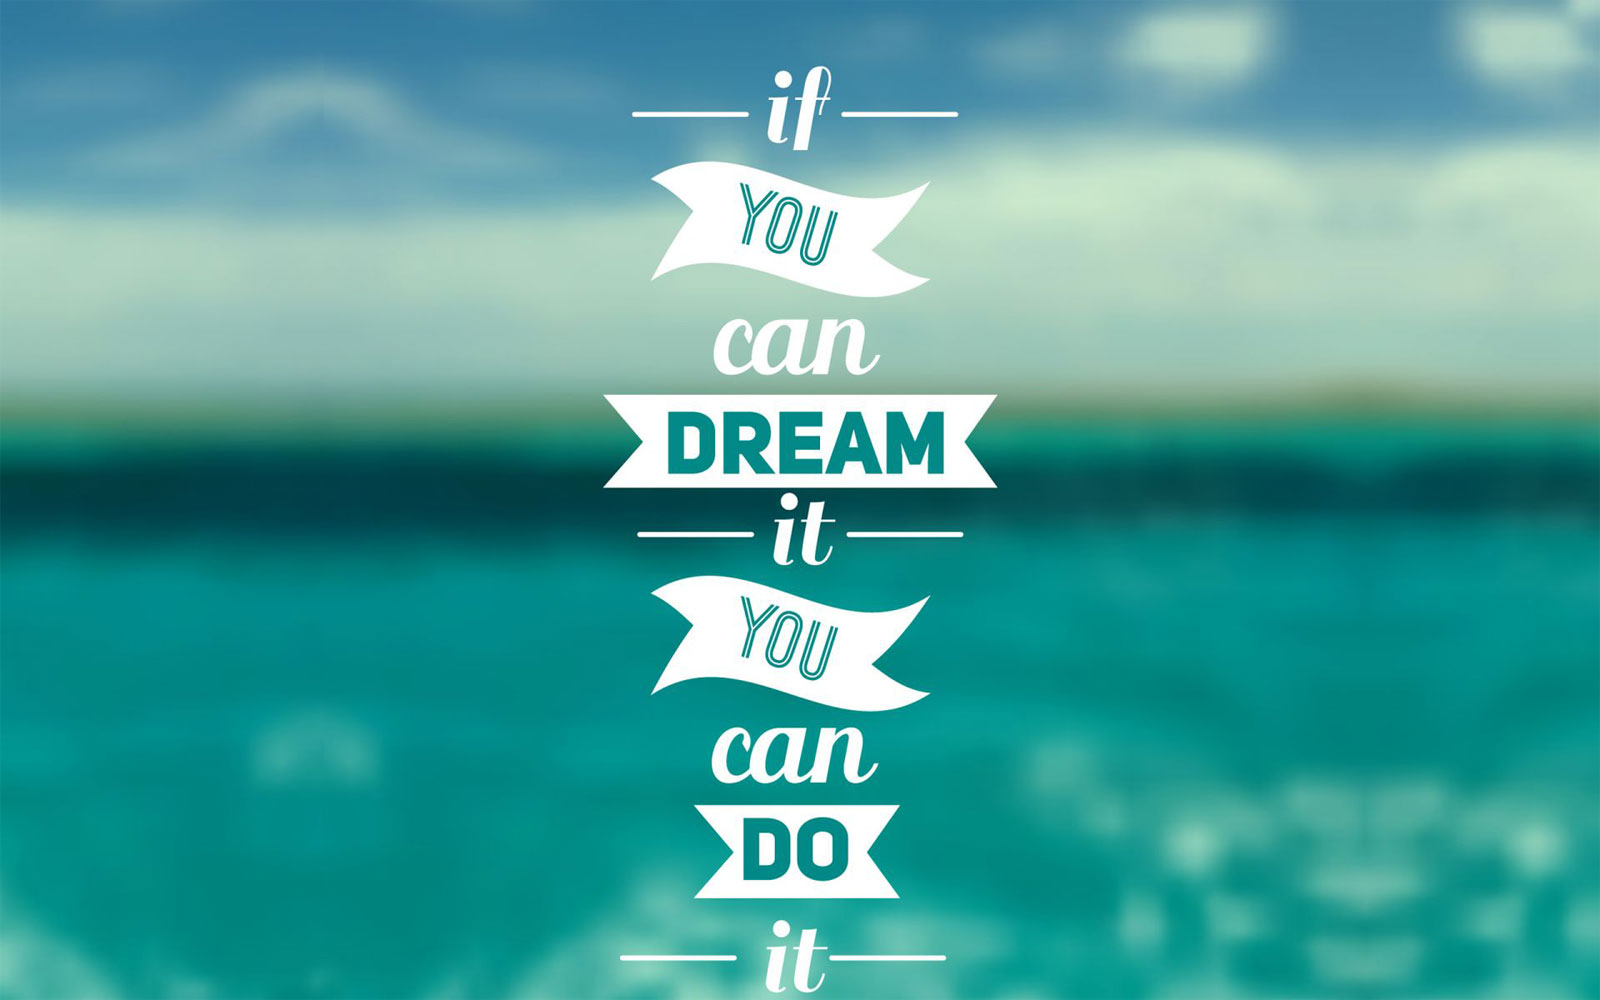 Dreams 115 Best Motivational Wallpaper Examples With Inspiring Quotes